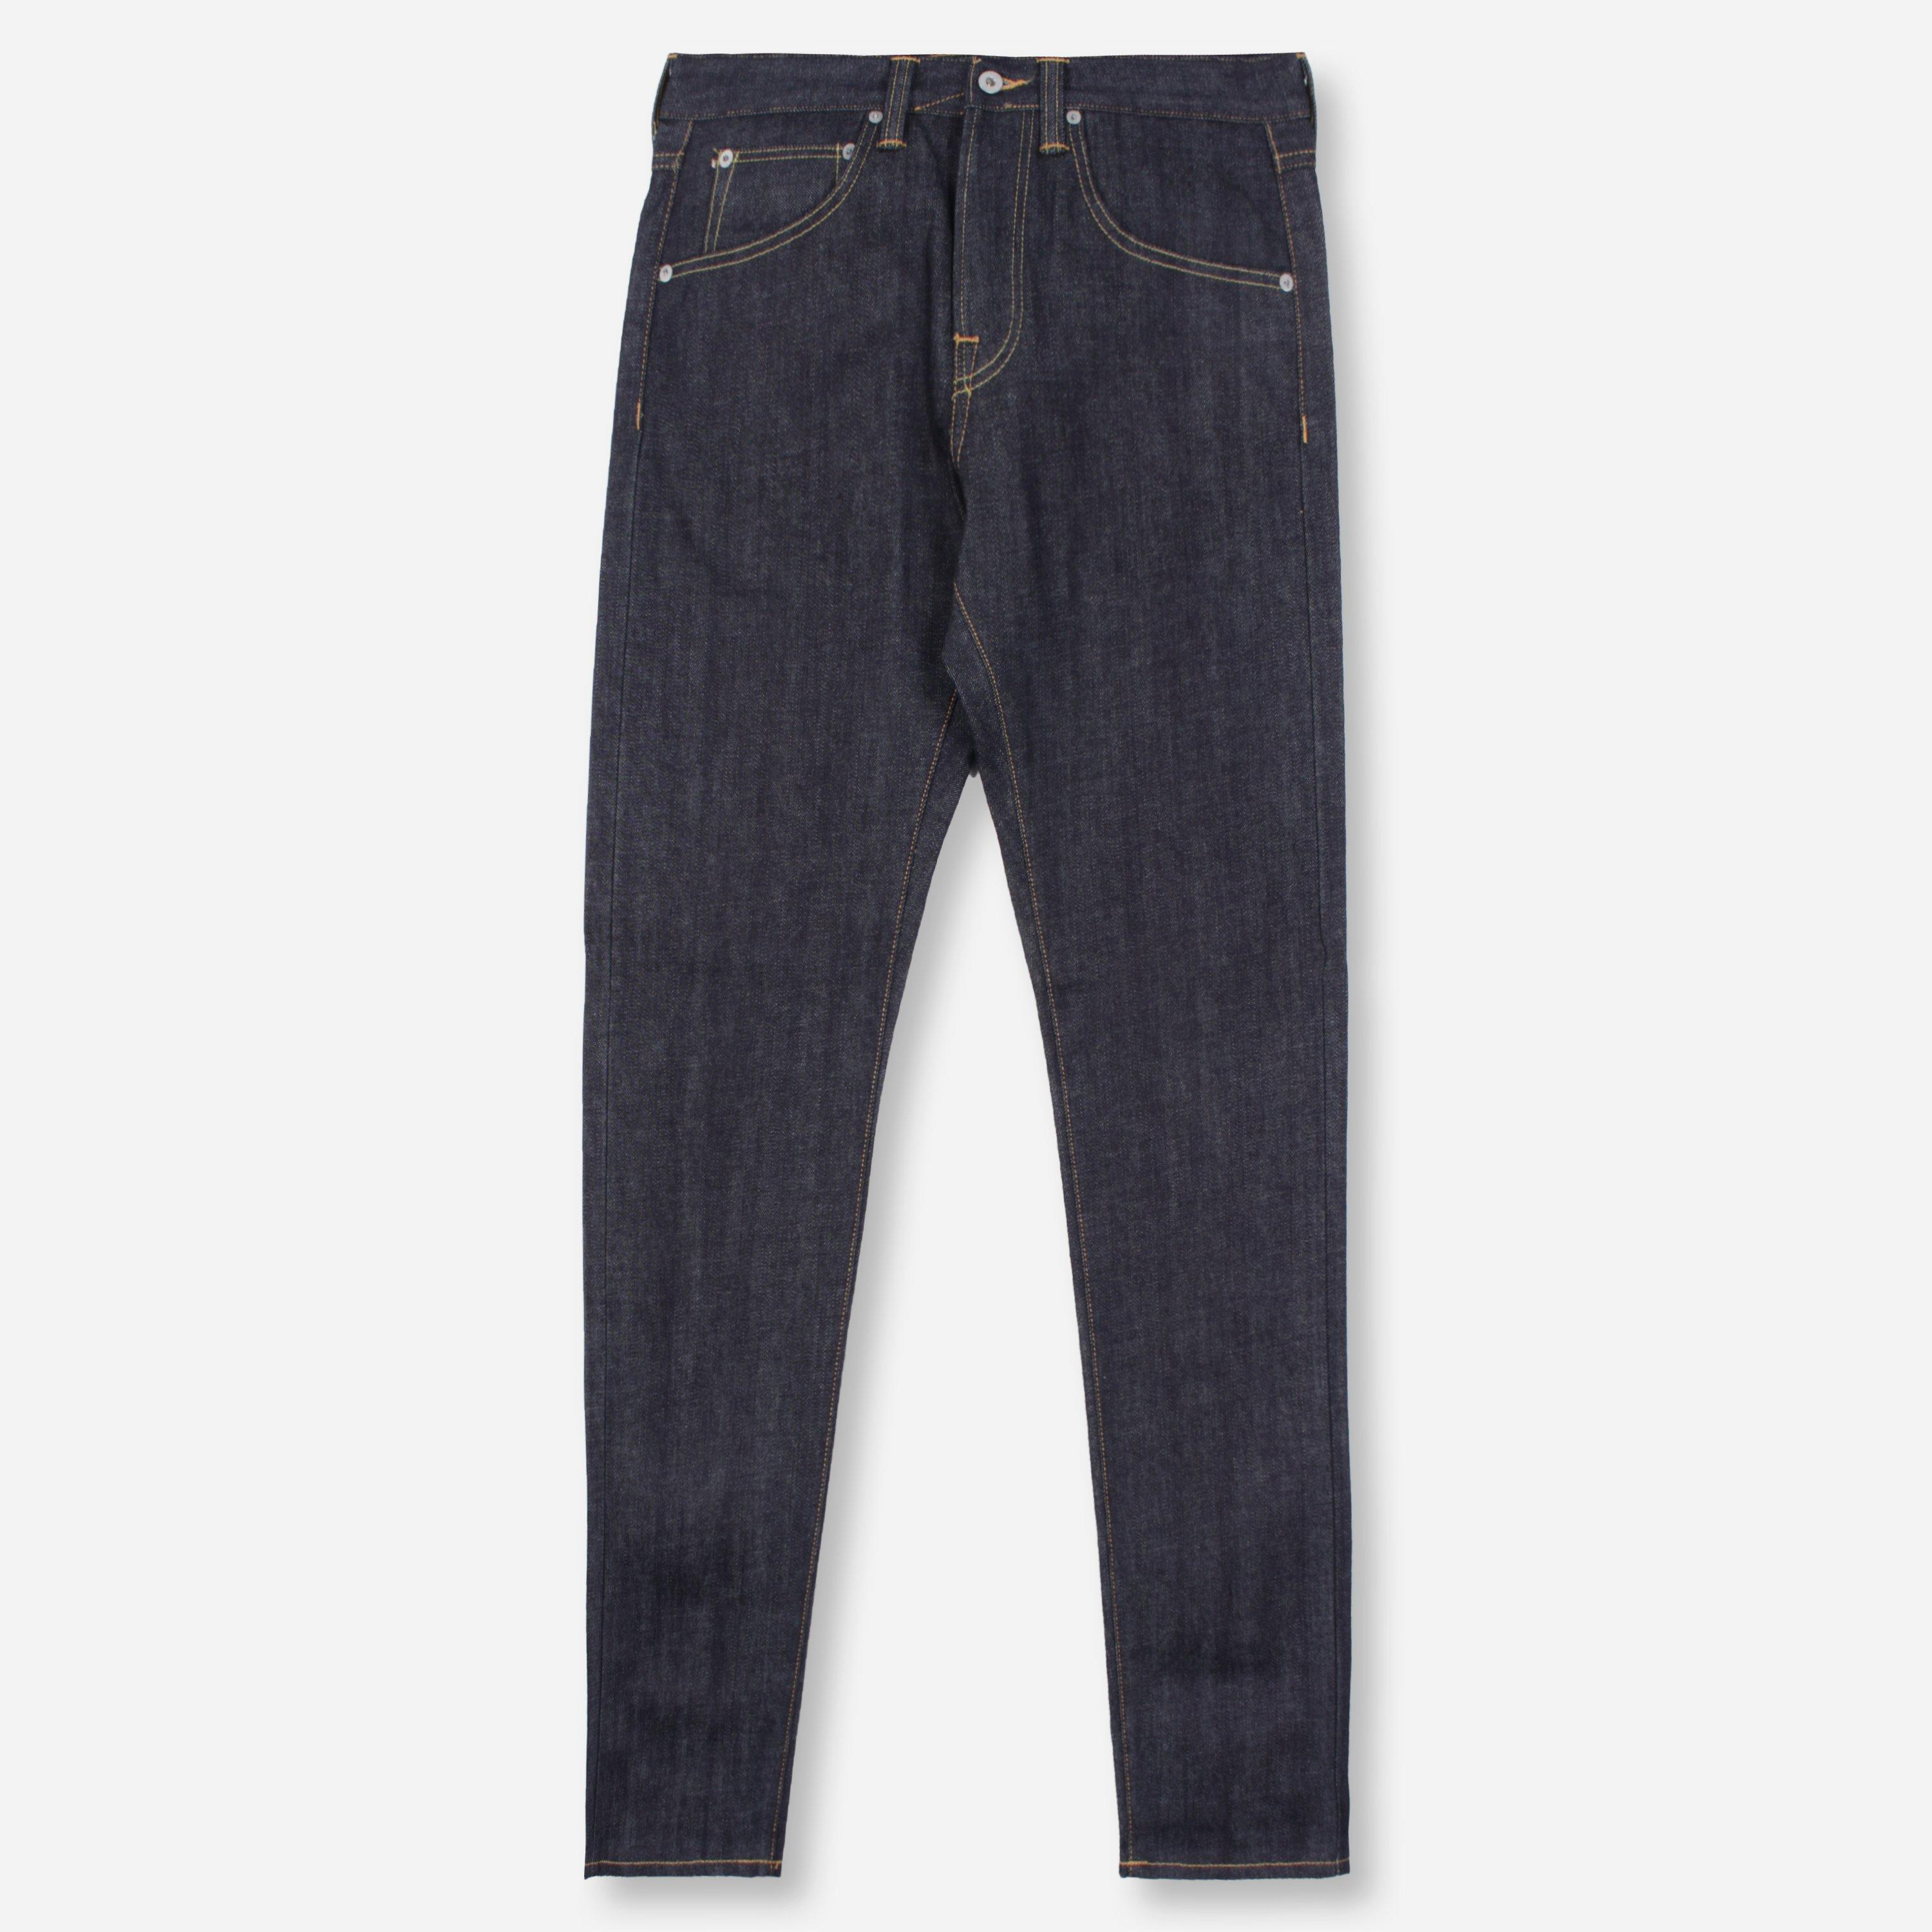 Edwin ED-55 Regular Tapered Red Listed Selvage Denim Unwashed